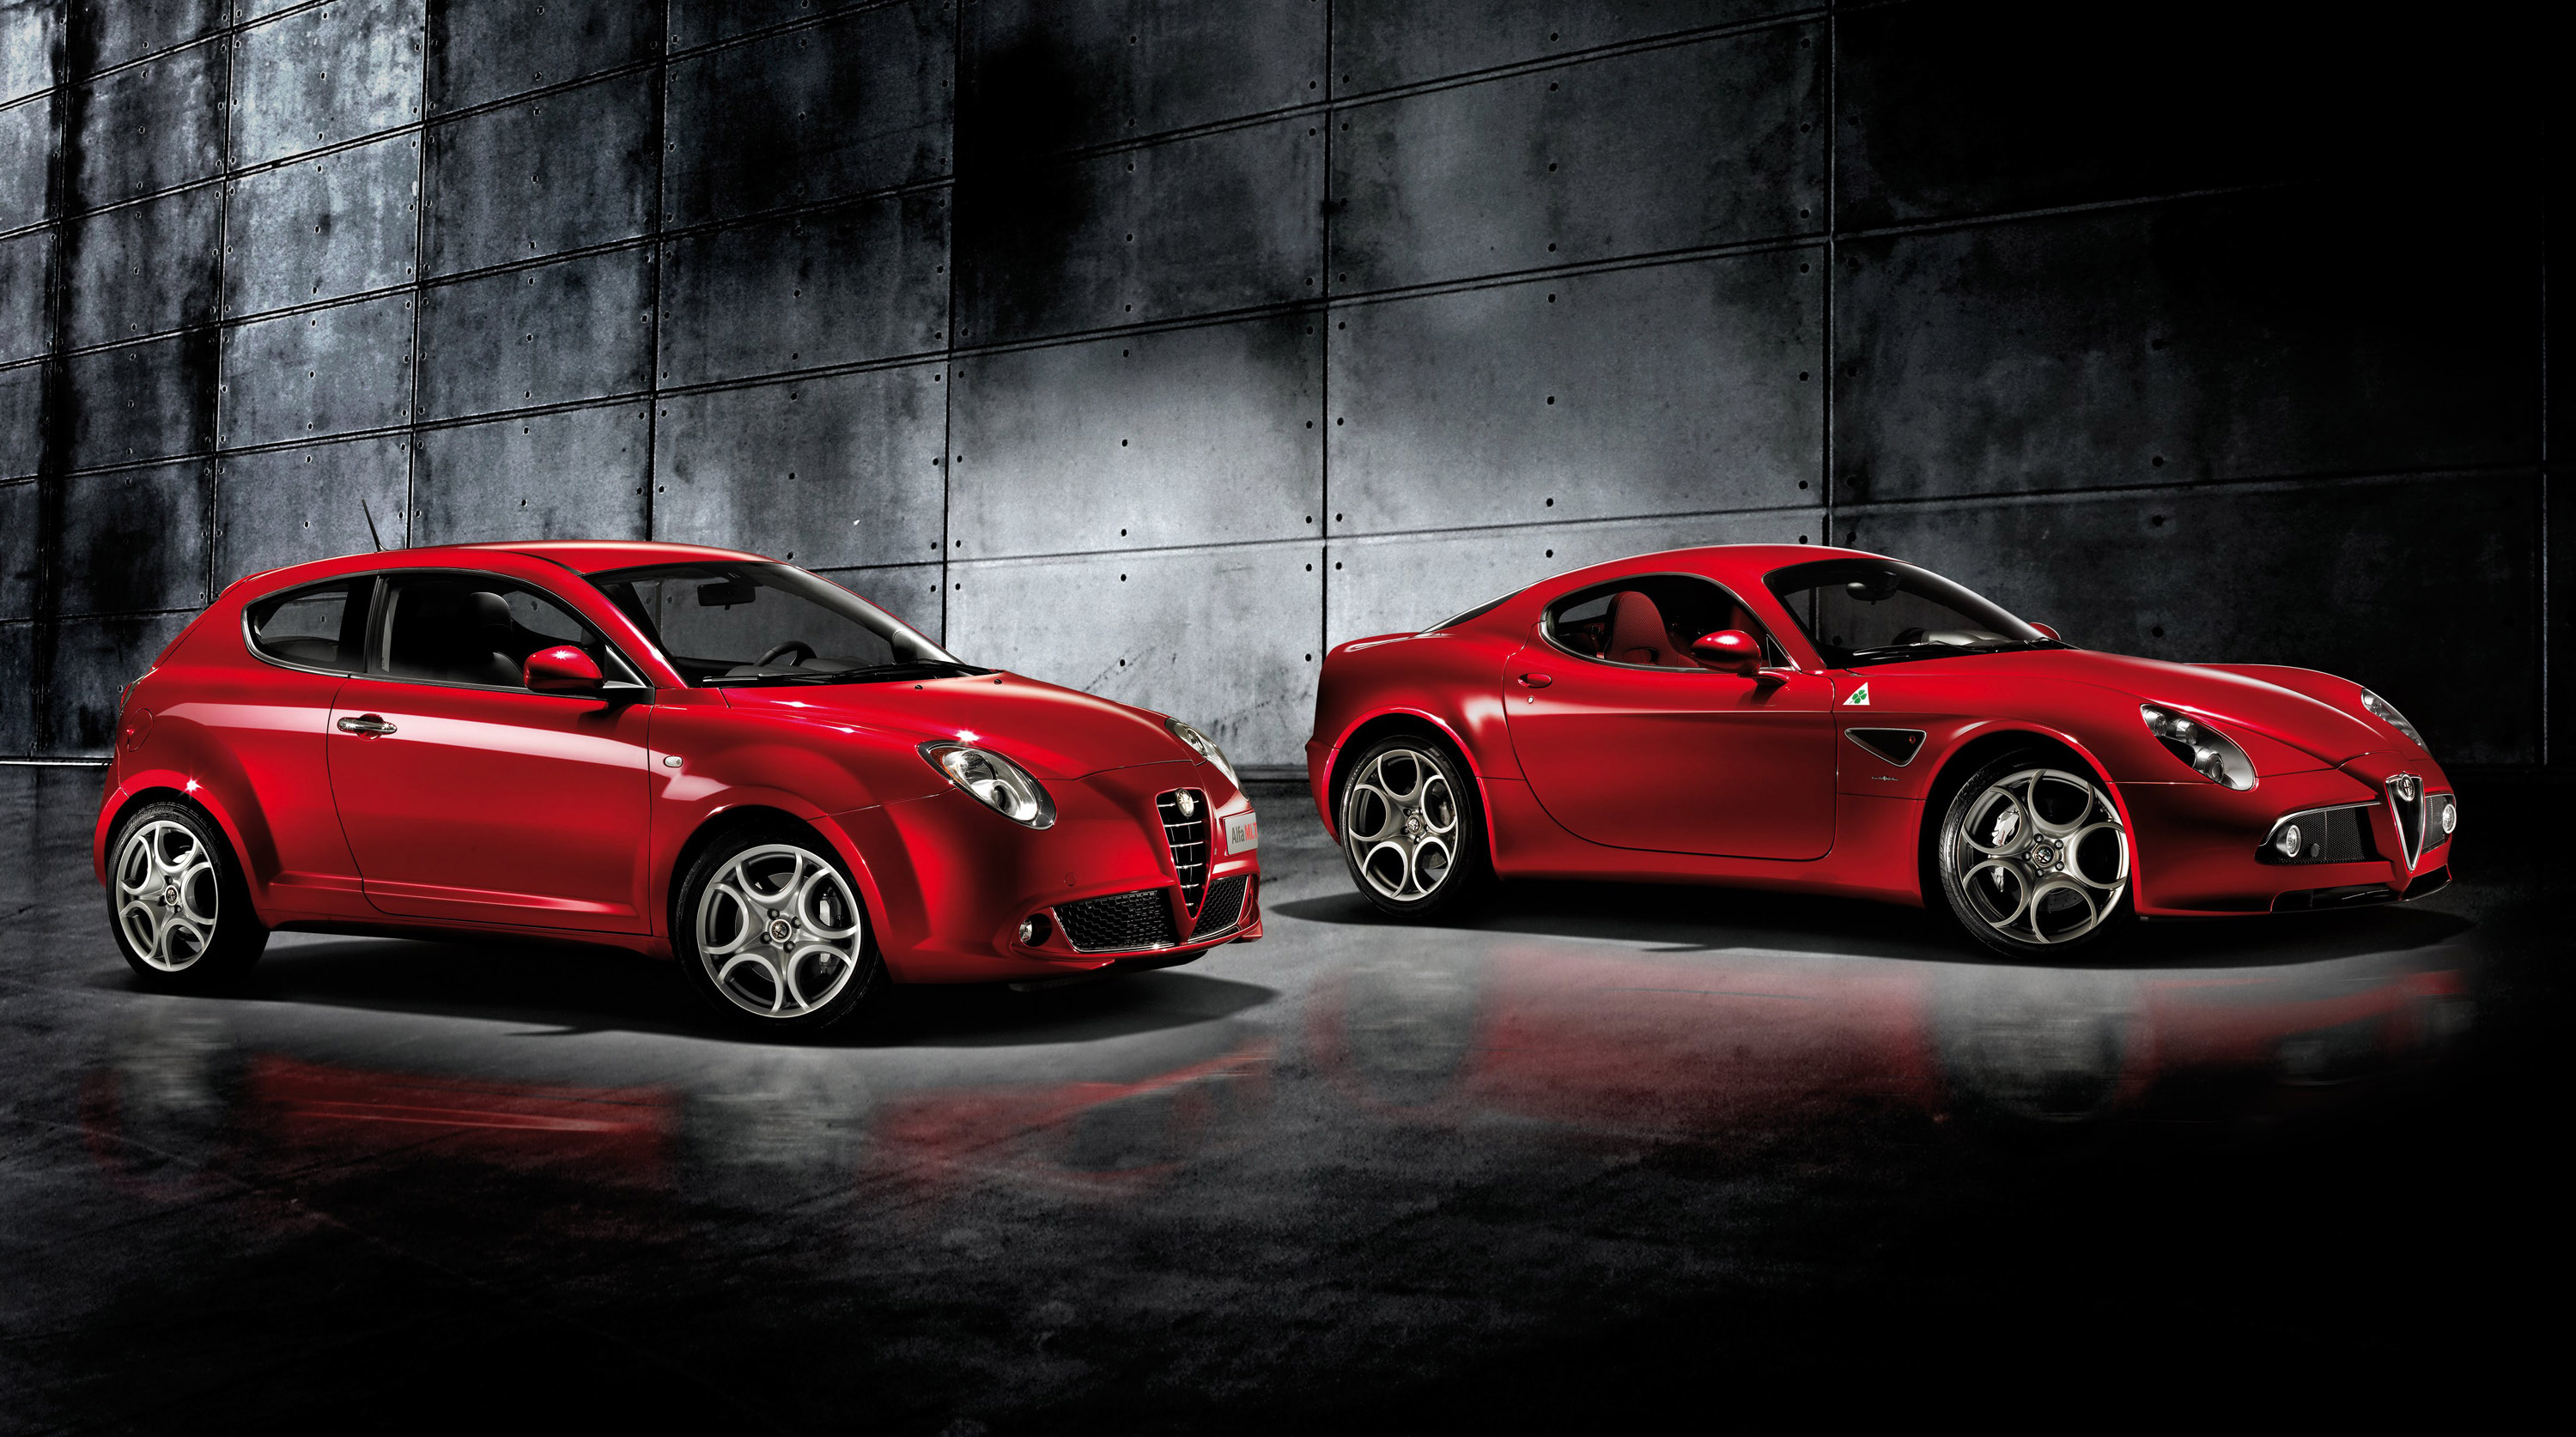 euro ncap five star rating for the alfa romeo mito. Black Bedroom Furniture Sets. Home Design Ideas